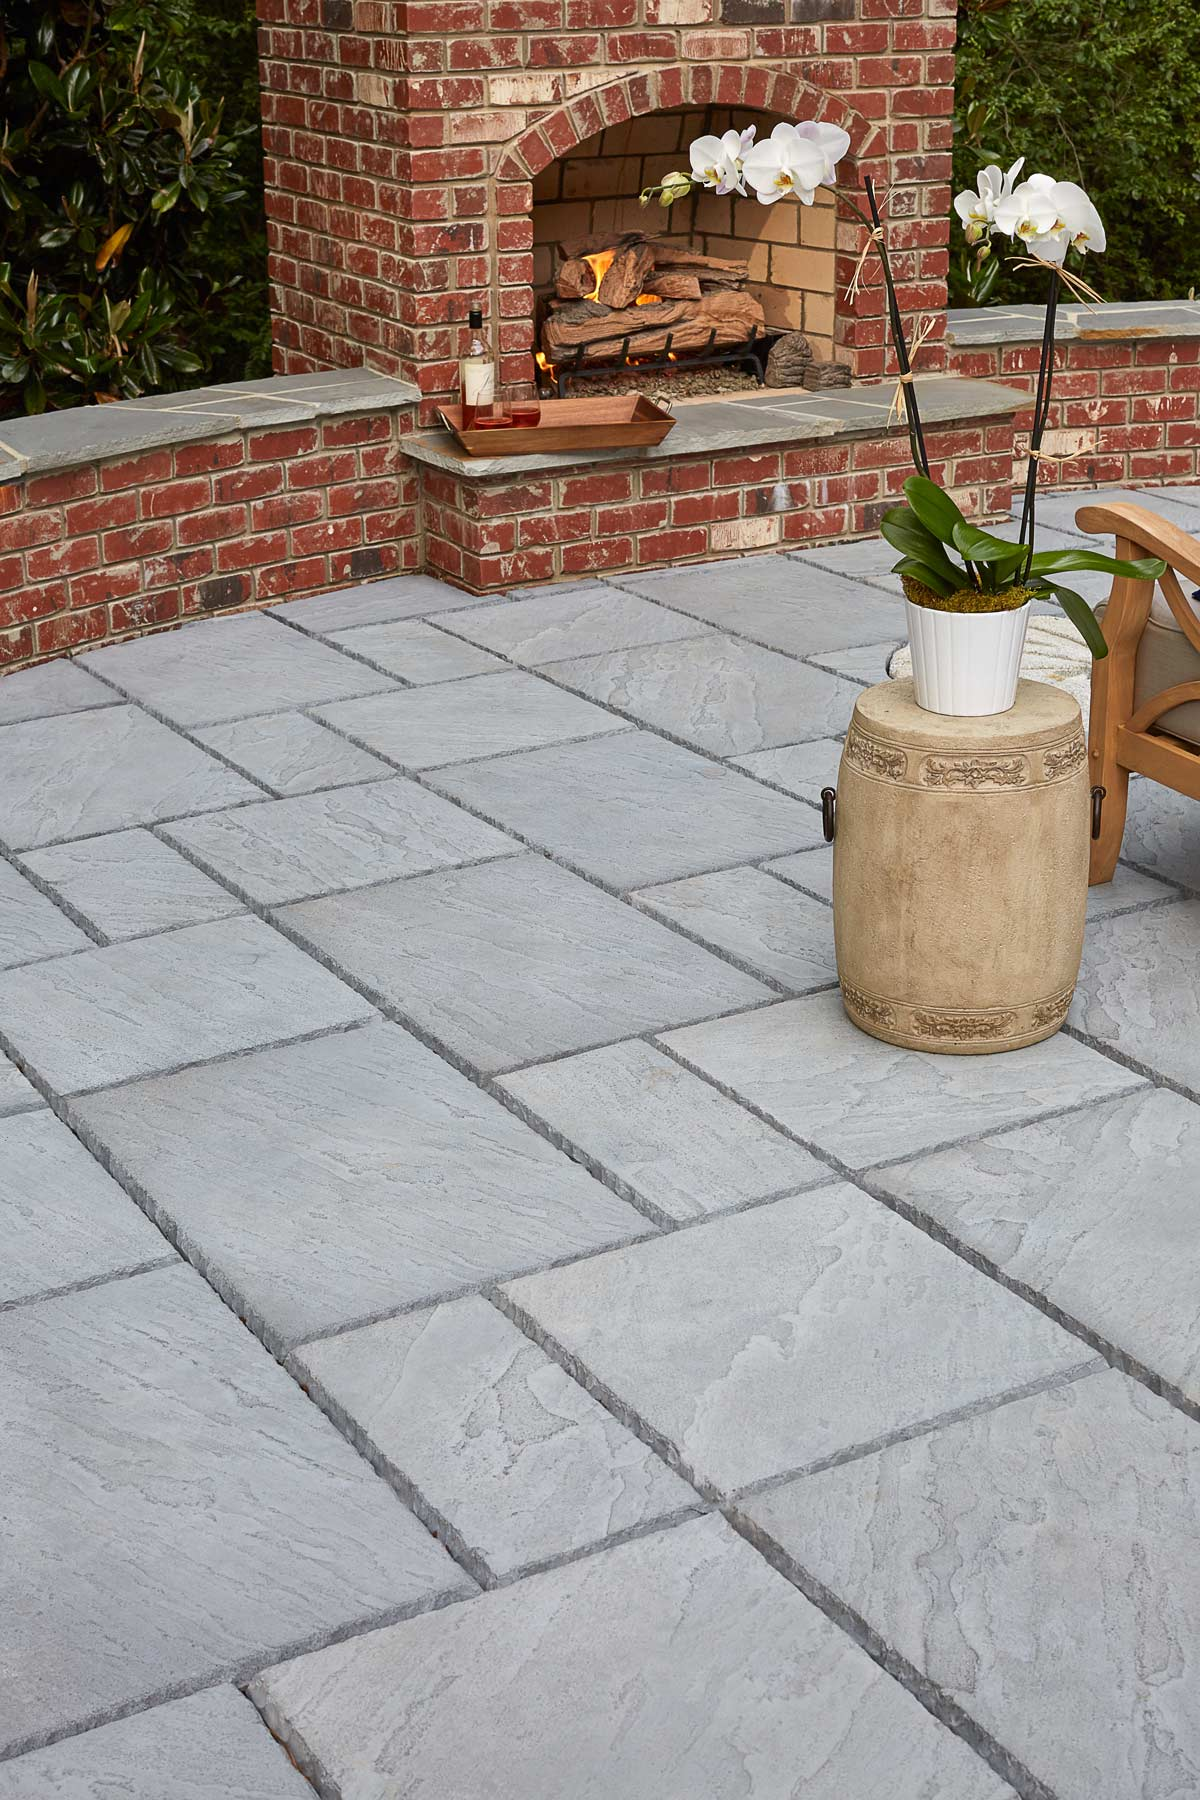 Editorial lifestyle photography of gray stone patio and outdoor fireplace